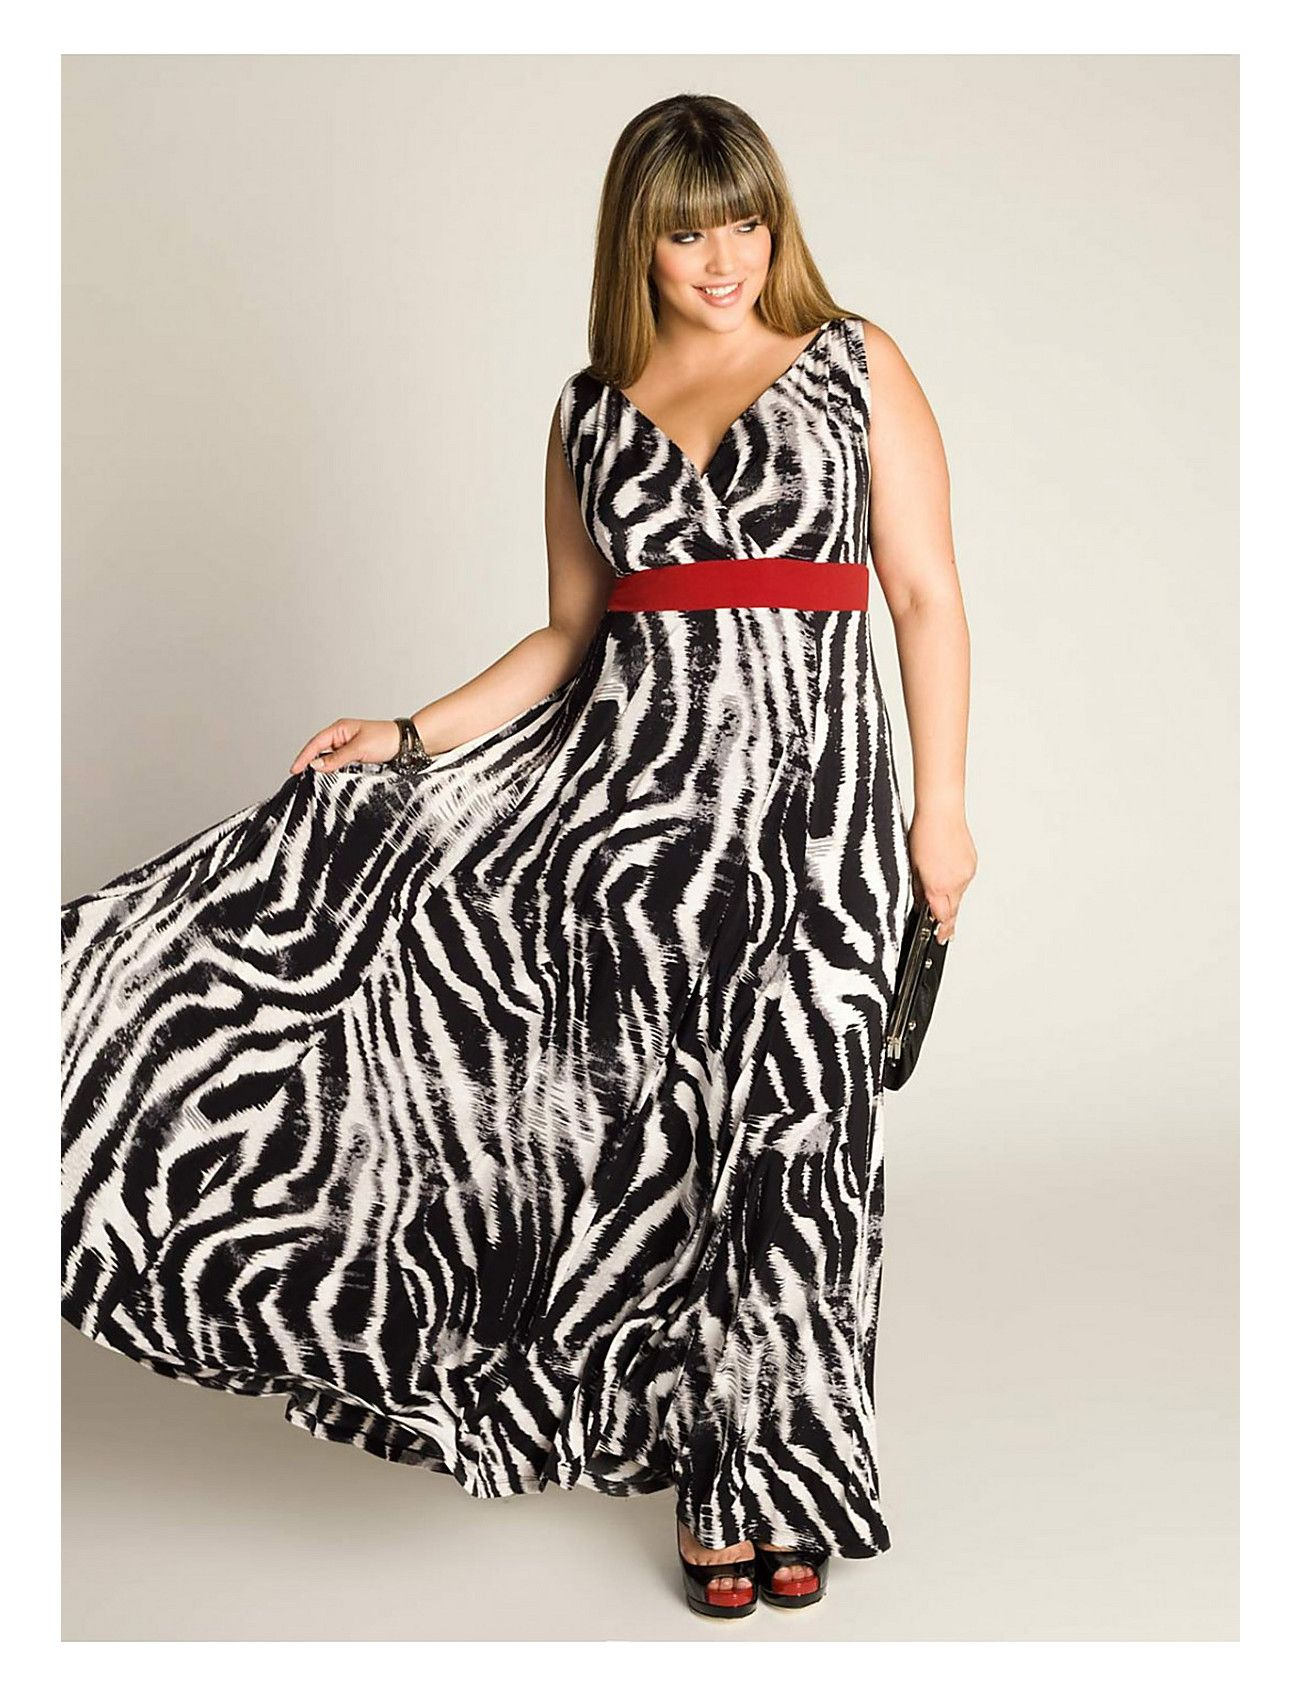 15438226ea4 A fun plus size maxi dress featuring a great zebra print accented with a  red-hot belt from IGIGI by Yuliya Raquel. Perfect for a summer event!